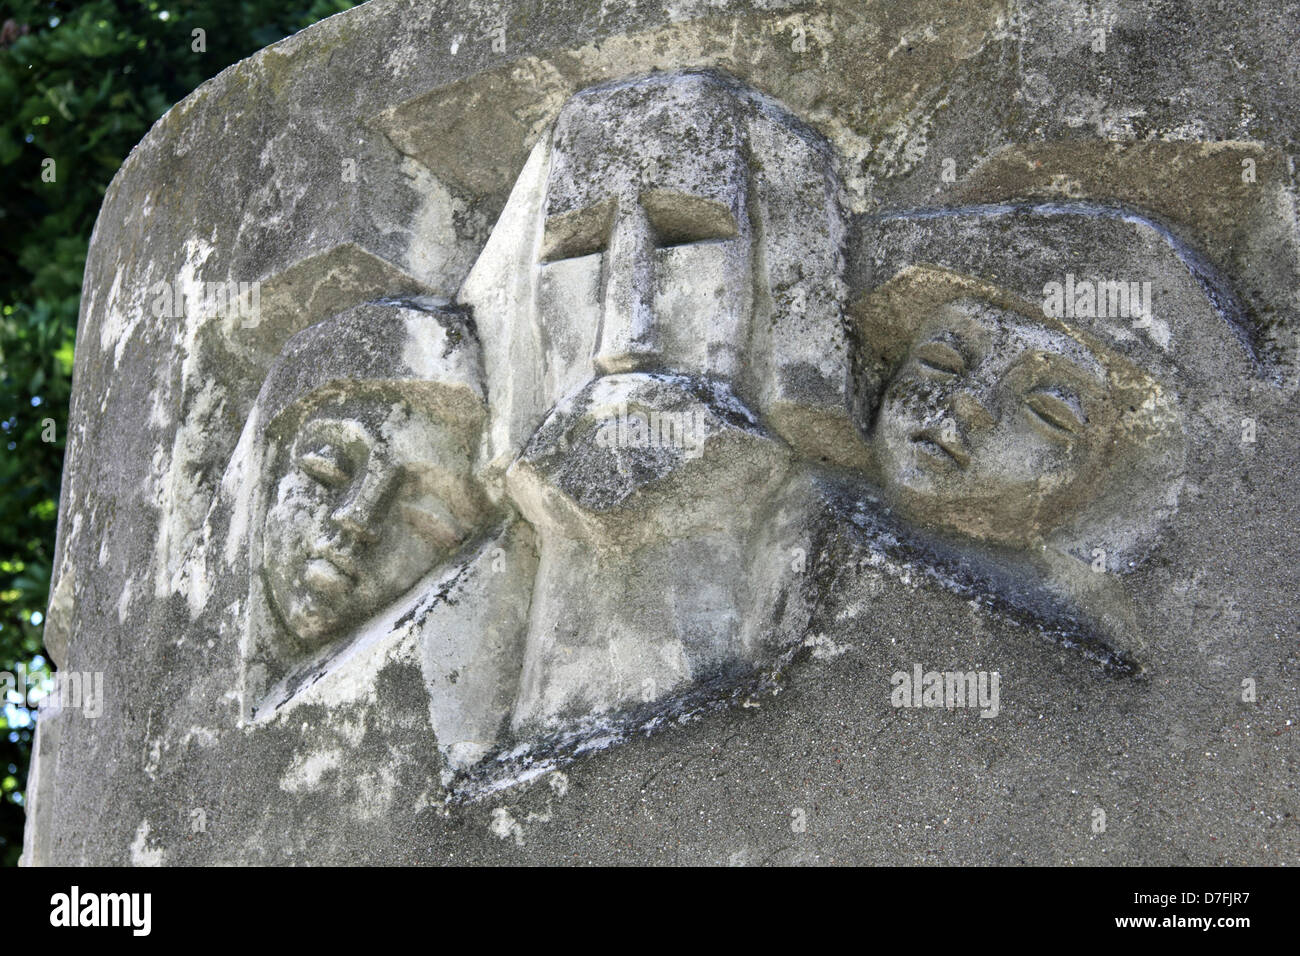 Janusz Korczak and Orphans' faces engraved on a section of a Sculpture In Front Of The Orphanage In Warsaw, - Stock Image